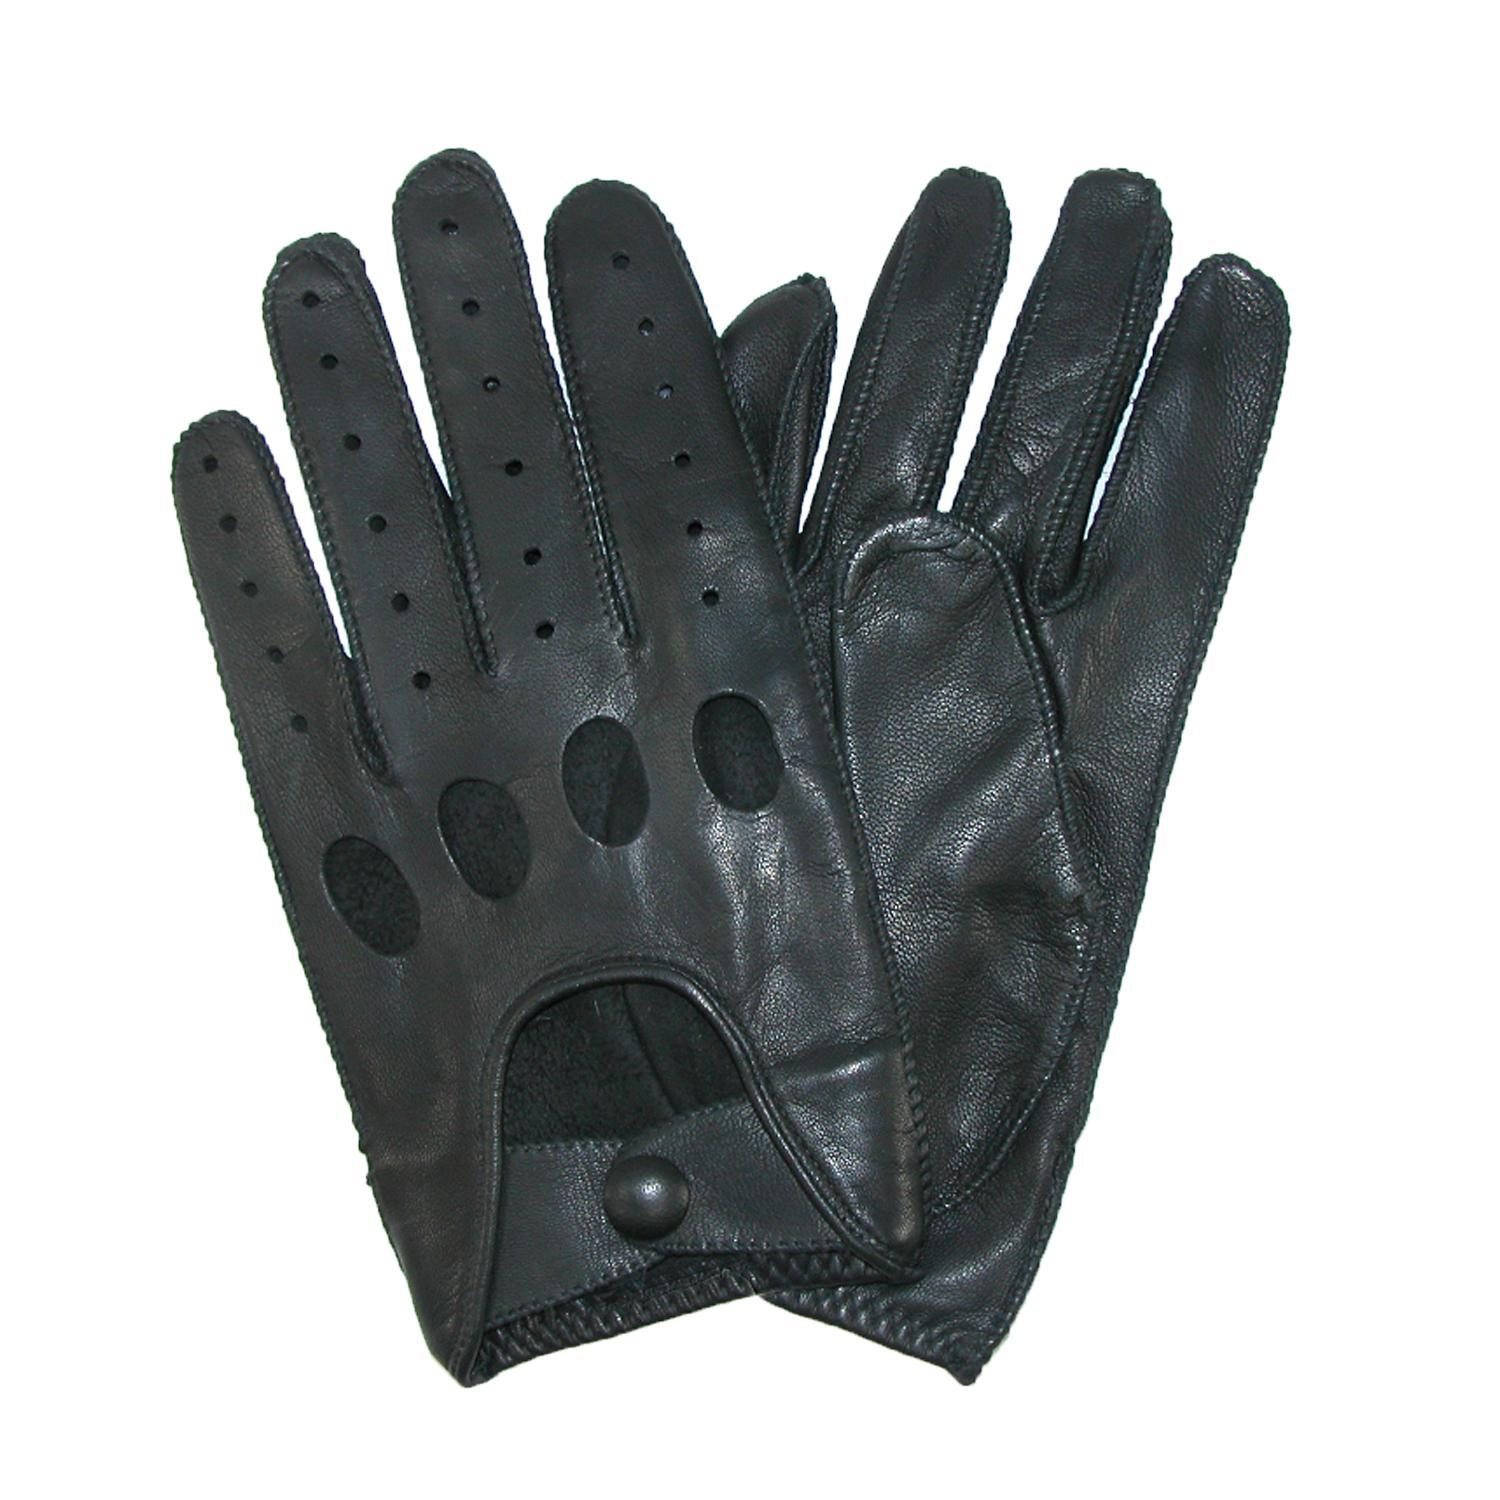 Special Insulated Leather Gloves - Great for everyday use and driving Harrms Best Shop Best Sellers· Deals of the Day· Fast Shipping· Read Ratings & Reviews.